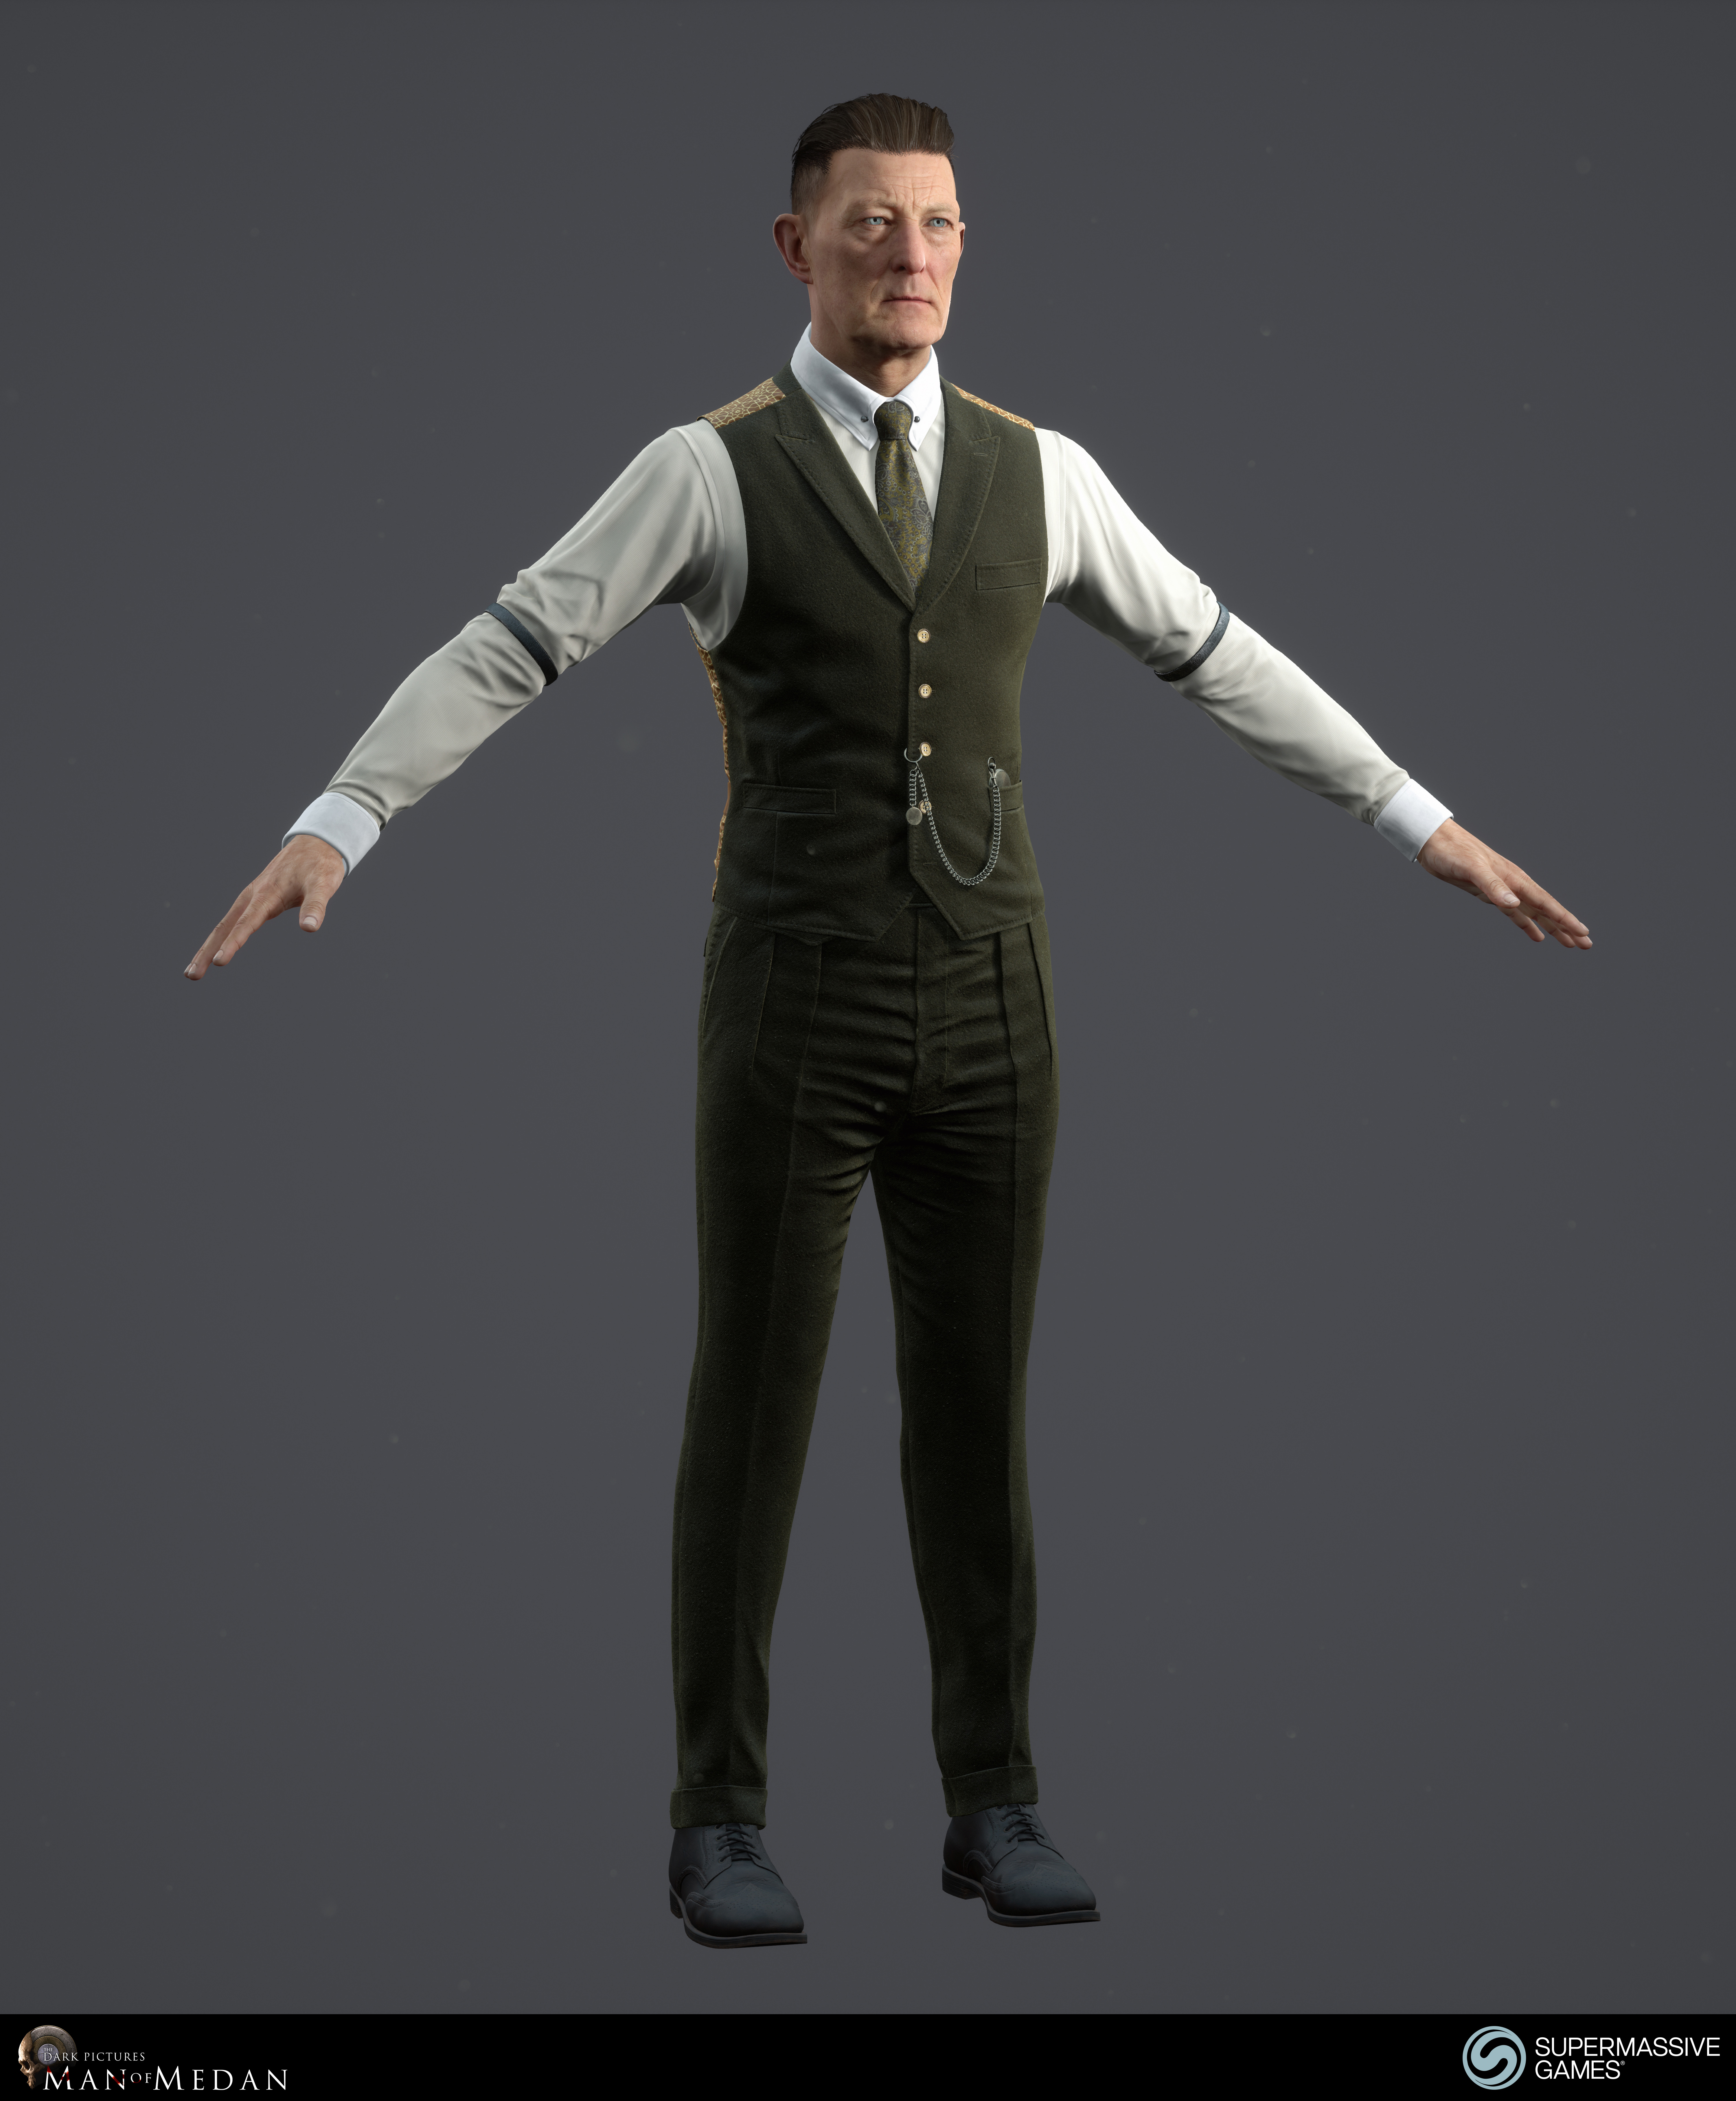 The Curator character from The Dark Pictures game in Unreal Engine. Cold hearted face with blue eyes, strong hold hair wax, elegant green costume, waistcoat, tie, pocket watch, sleeve garter. Andor Kollar